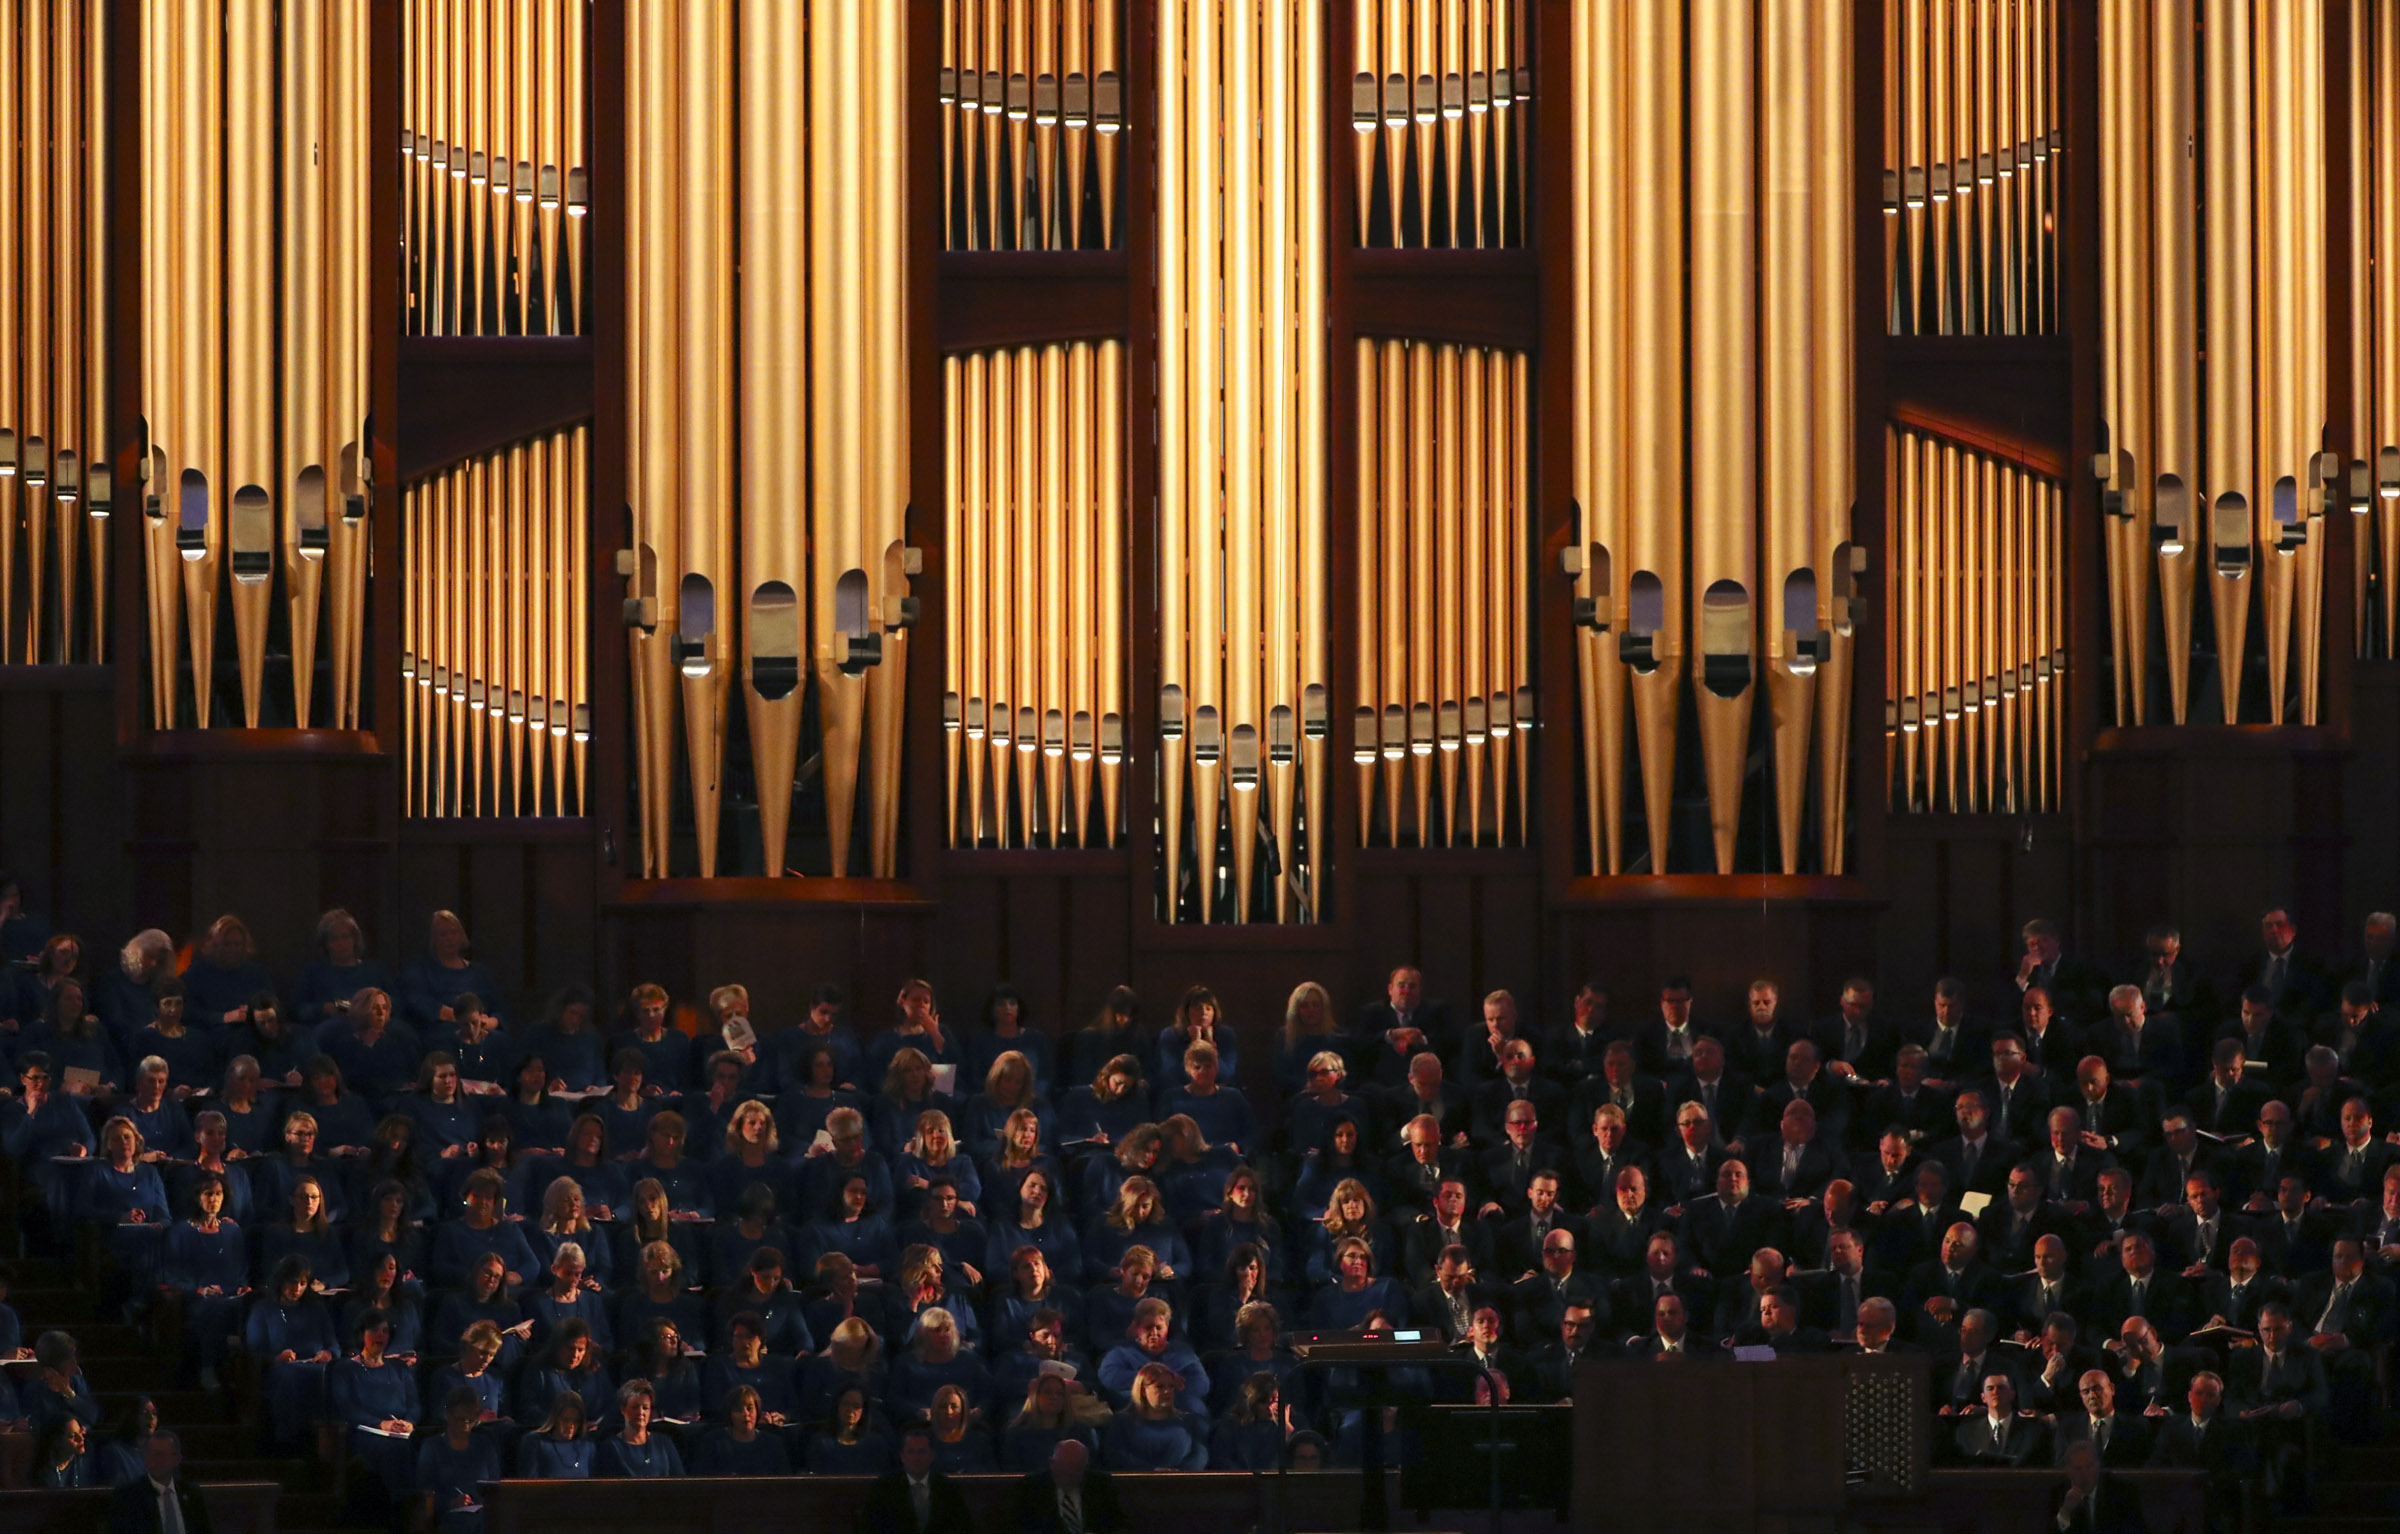 The Tabernacle Choir at Temple Square prepares to sing in the Conference Center in Salt Lake City during the morning session of the 189th Annual General Conference of The Church of Jesus Christ of Latter-day Saints on Saturday, April 6, 2019.